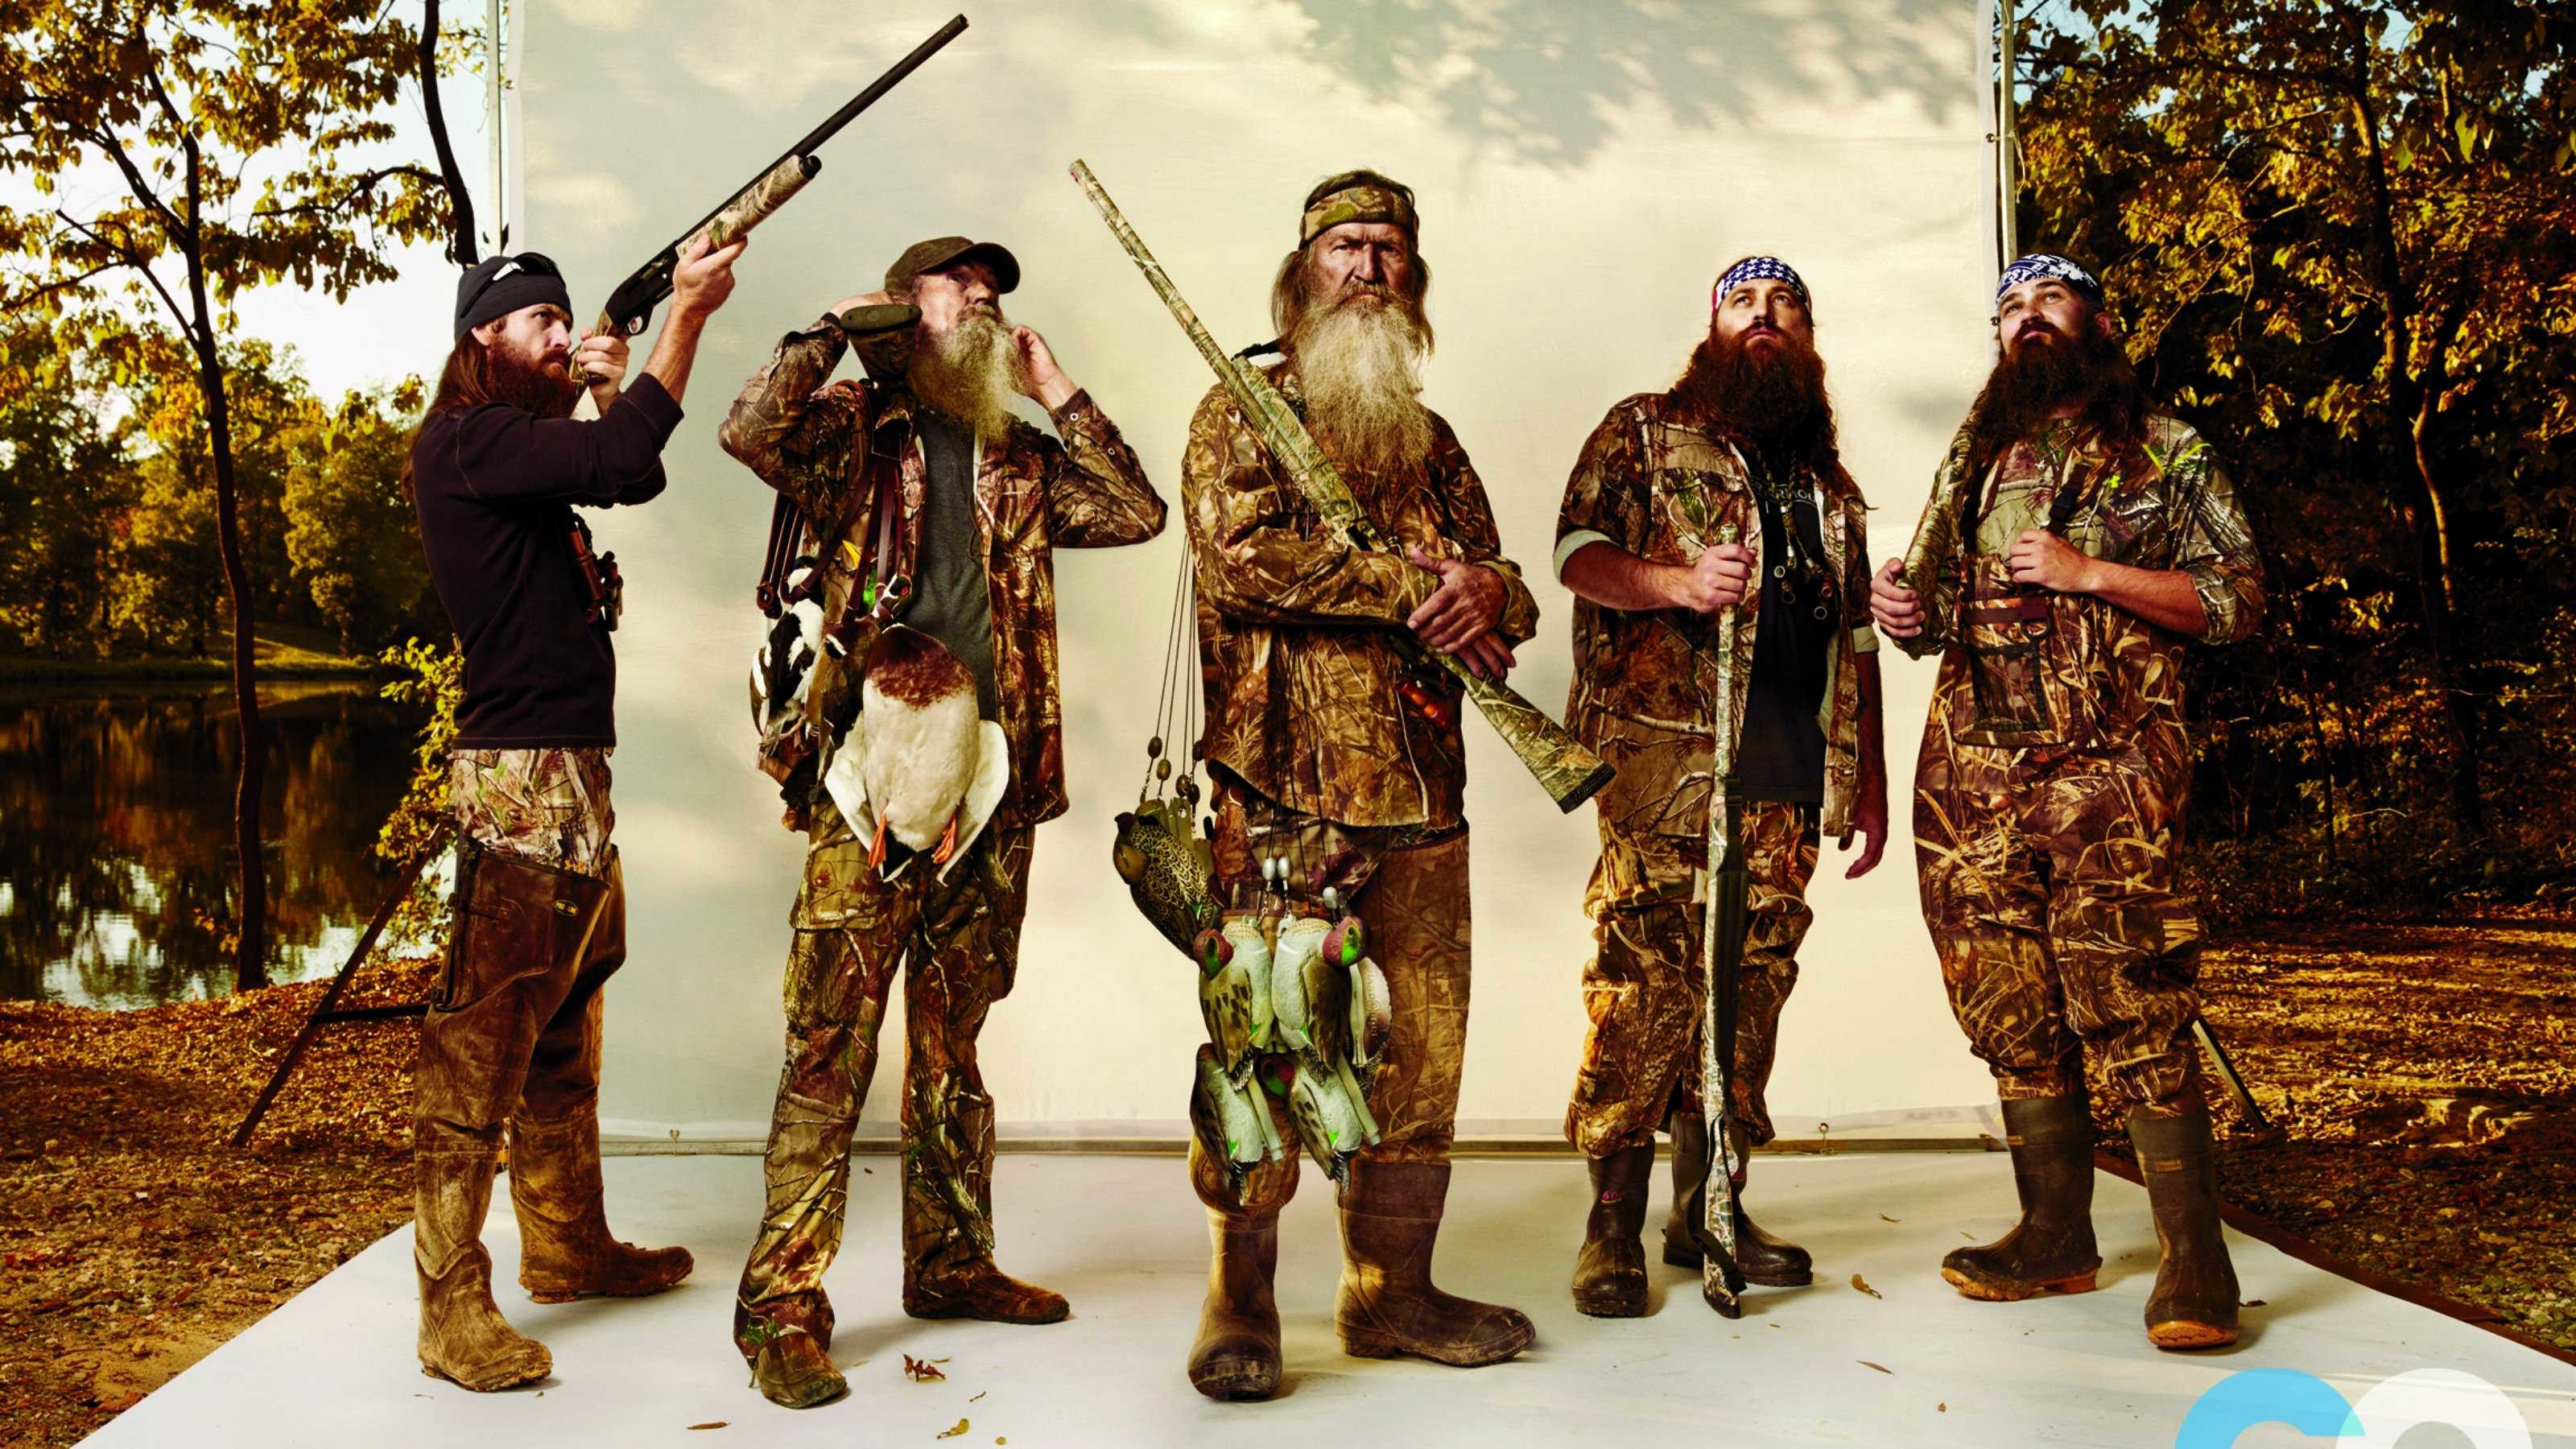 Res: 3200x1800, Duck Dynasty Reality Series Hunting Comedy Wallpaper Photos For Mobile Hd  Pics